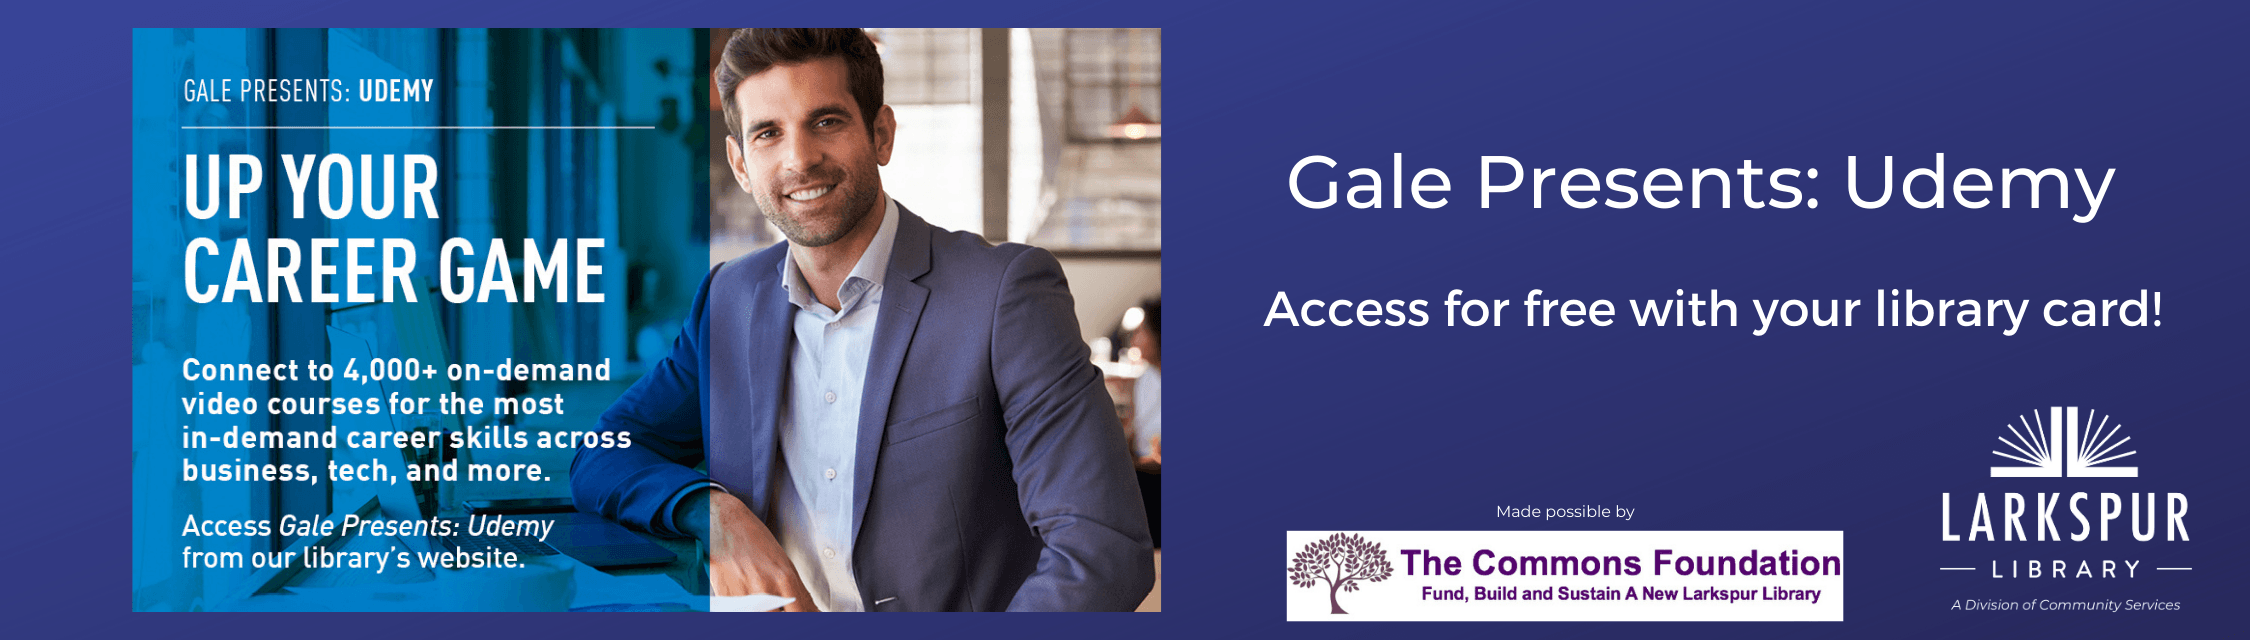 Gale Presents Udemy Access for free with your library card.